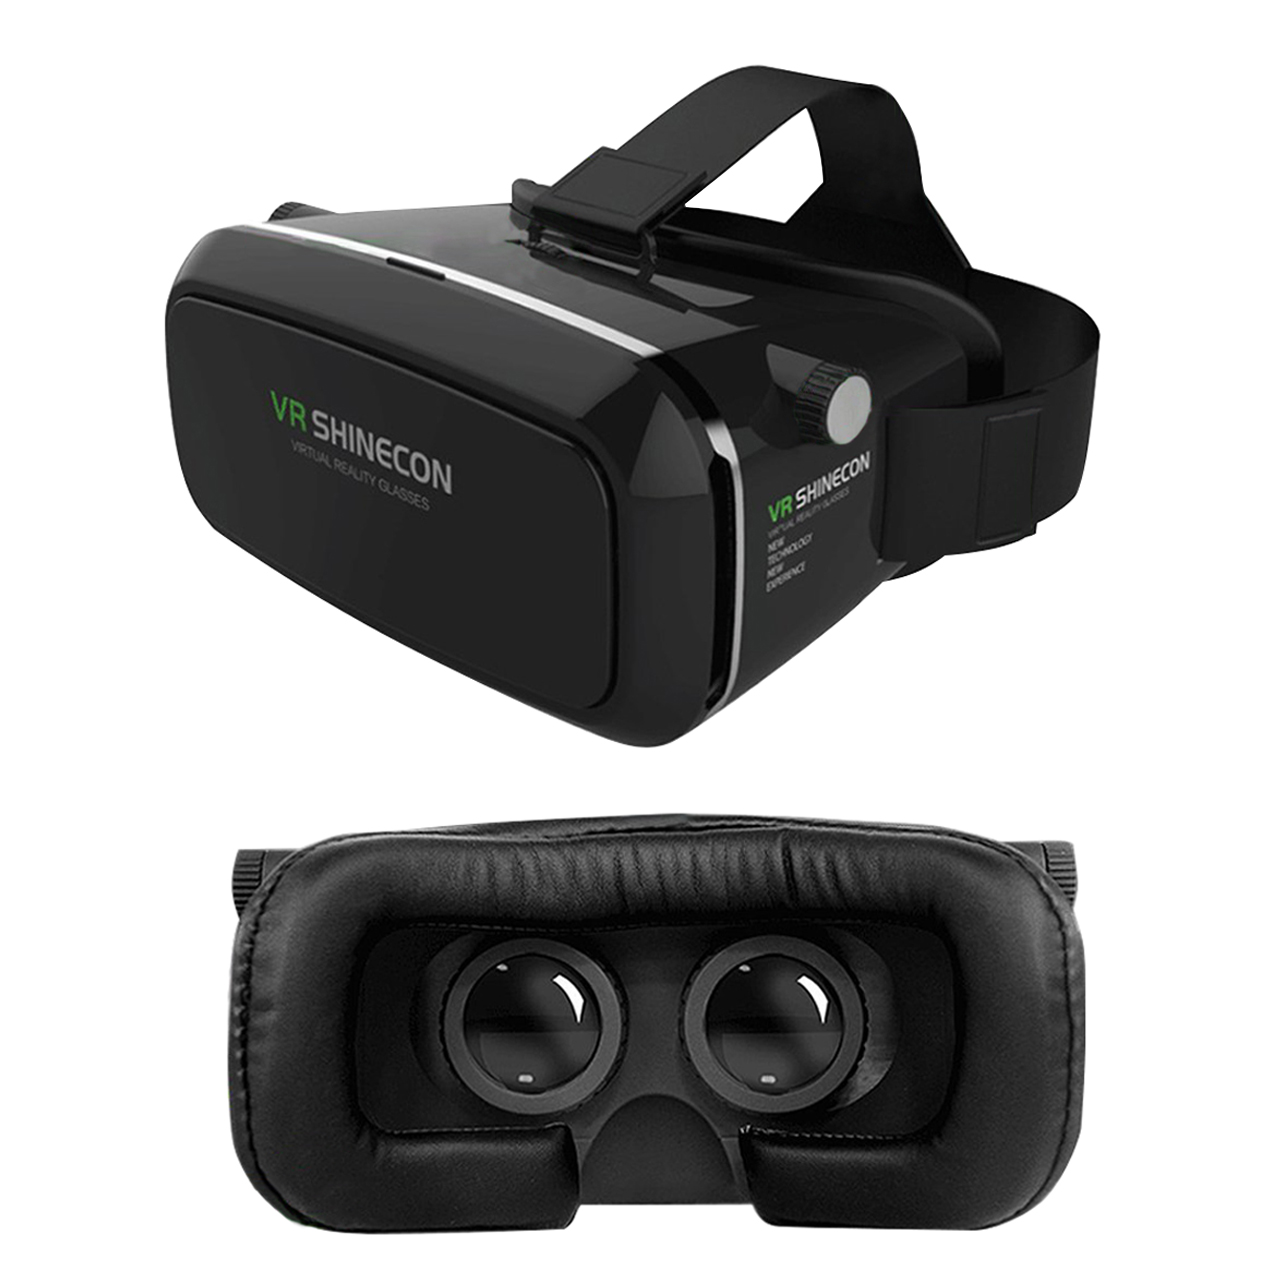 3d vr headset virtual reality box with lens and strap for. Black Bedroom Furniture Sets. Home Design Ideas